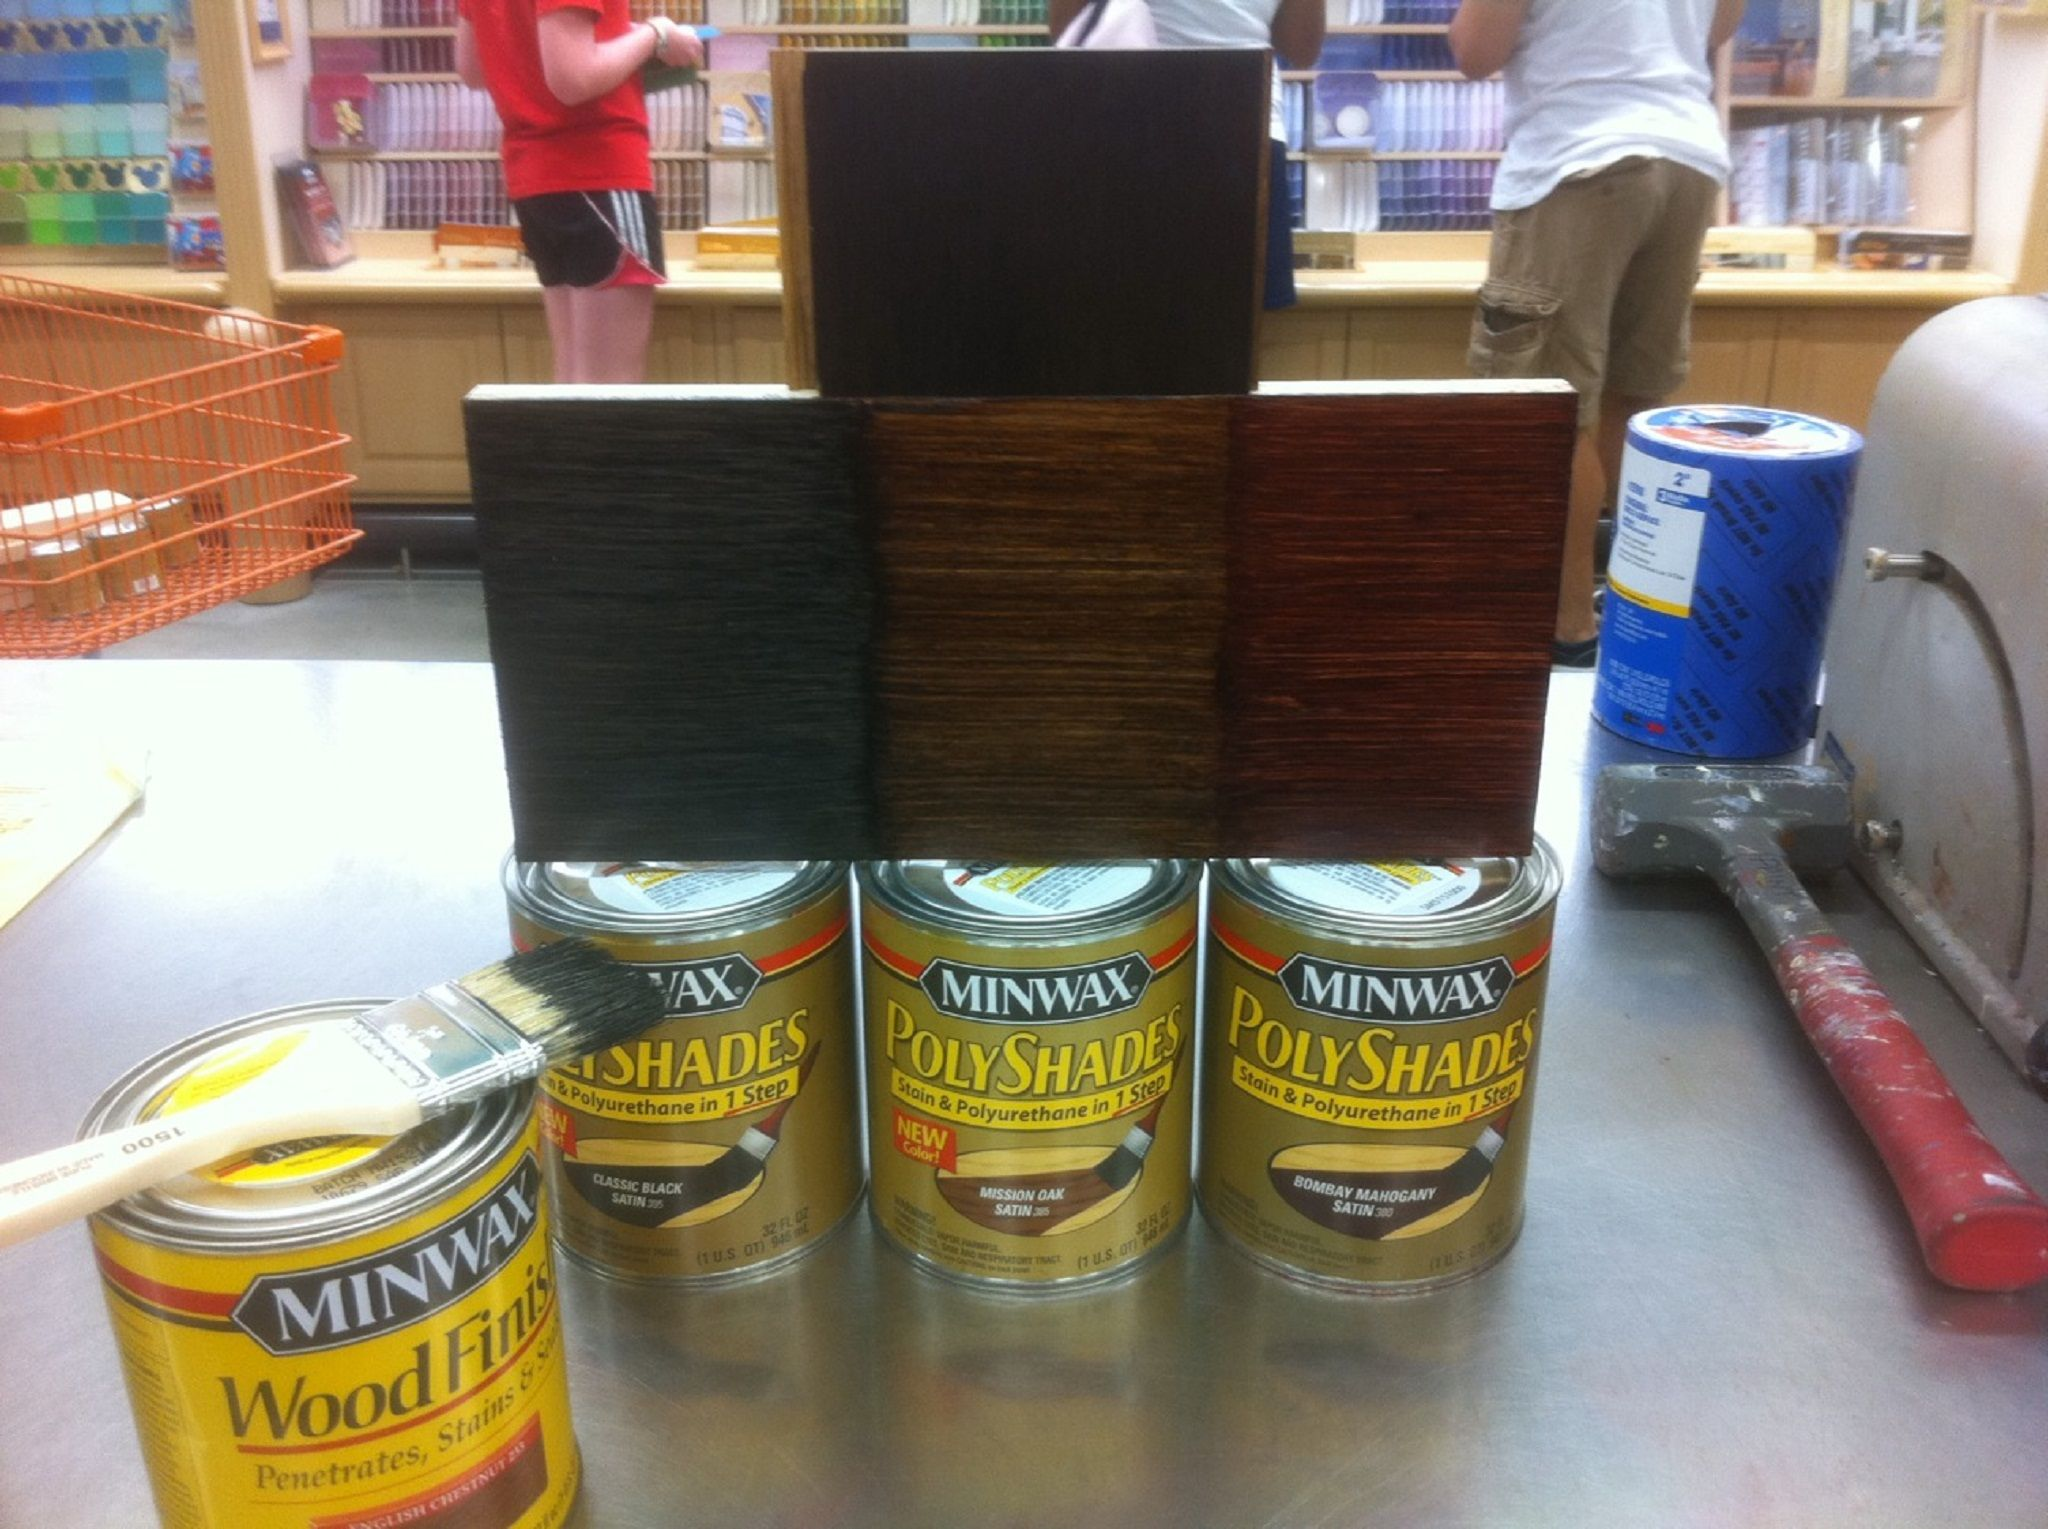 Want Faux Wood Grain? Use PolyShades Over Stain | The Home Depot Community